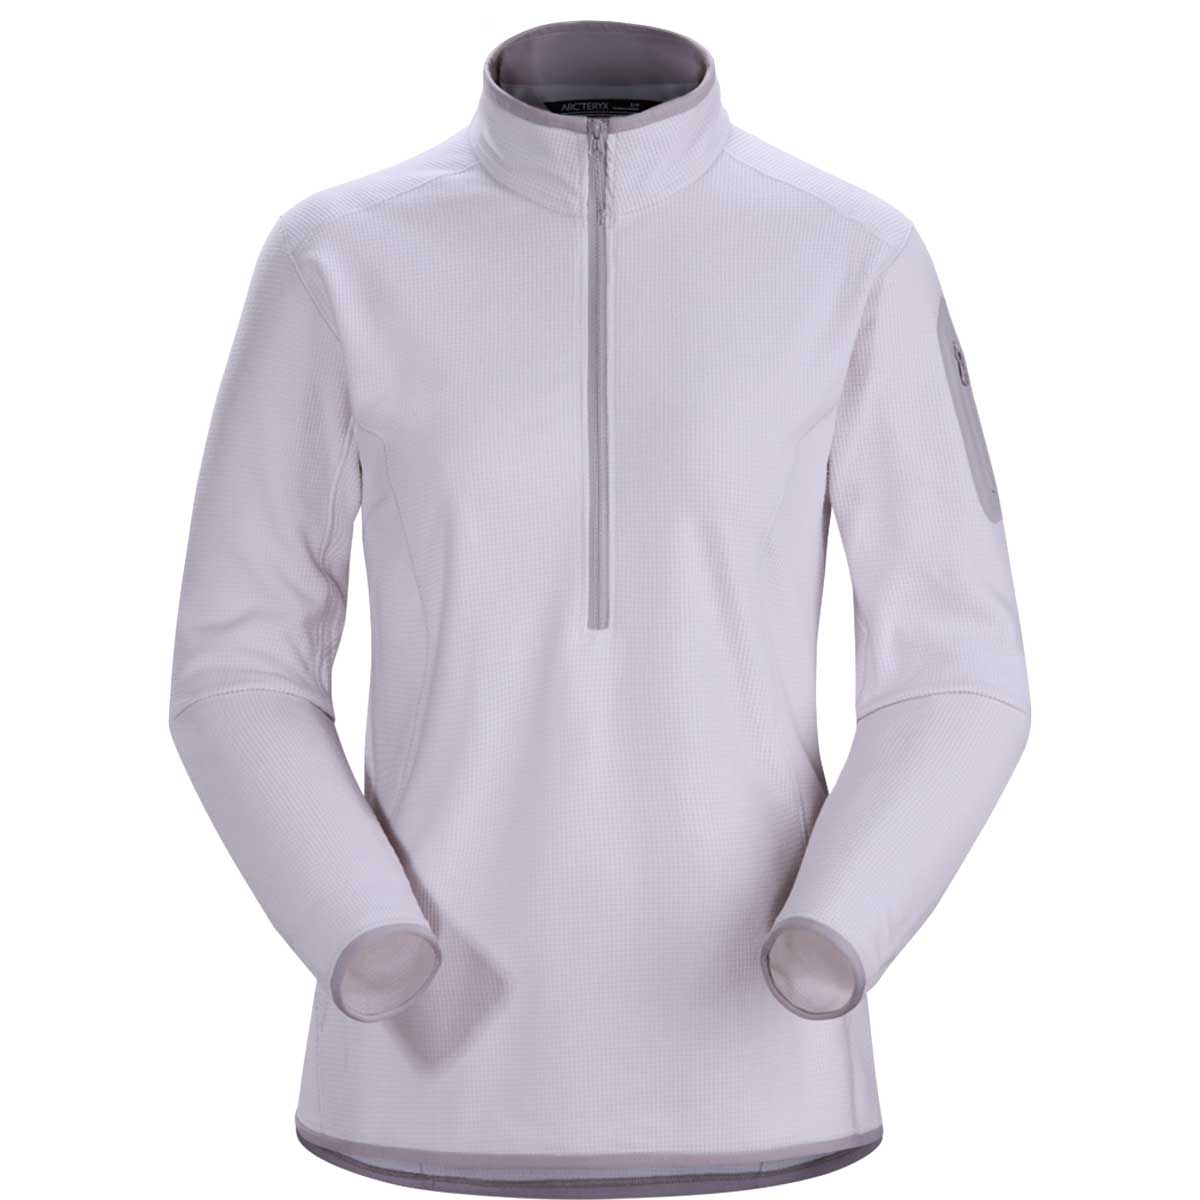 Arcteryx women's Delta LT Zip Neck Pullover in Synapse front view